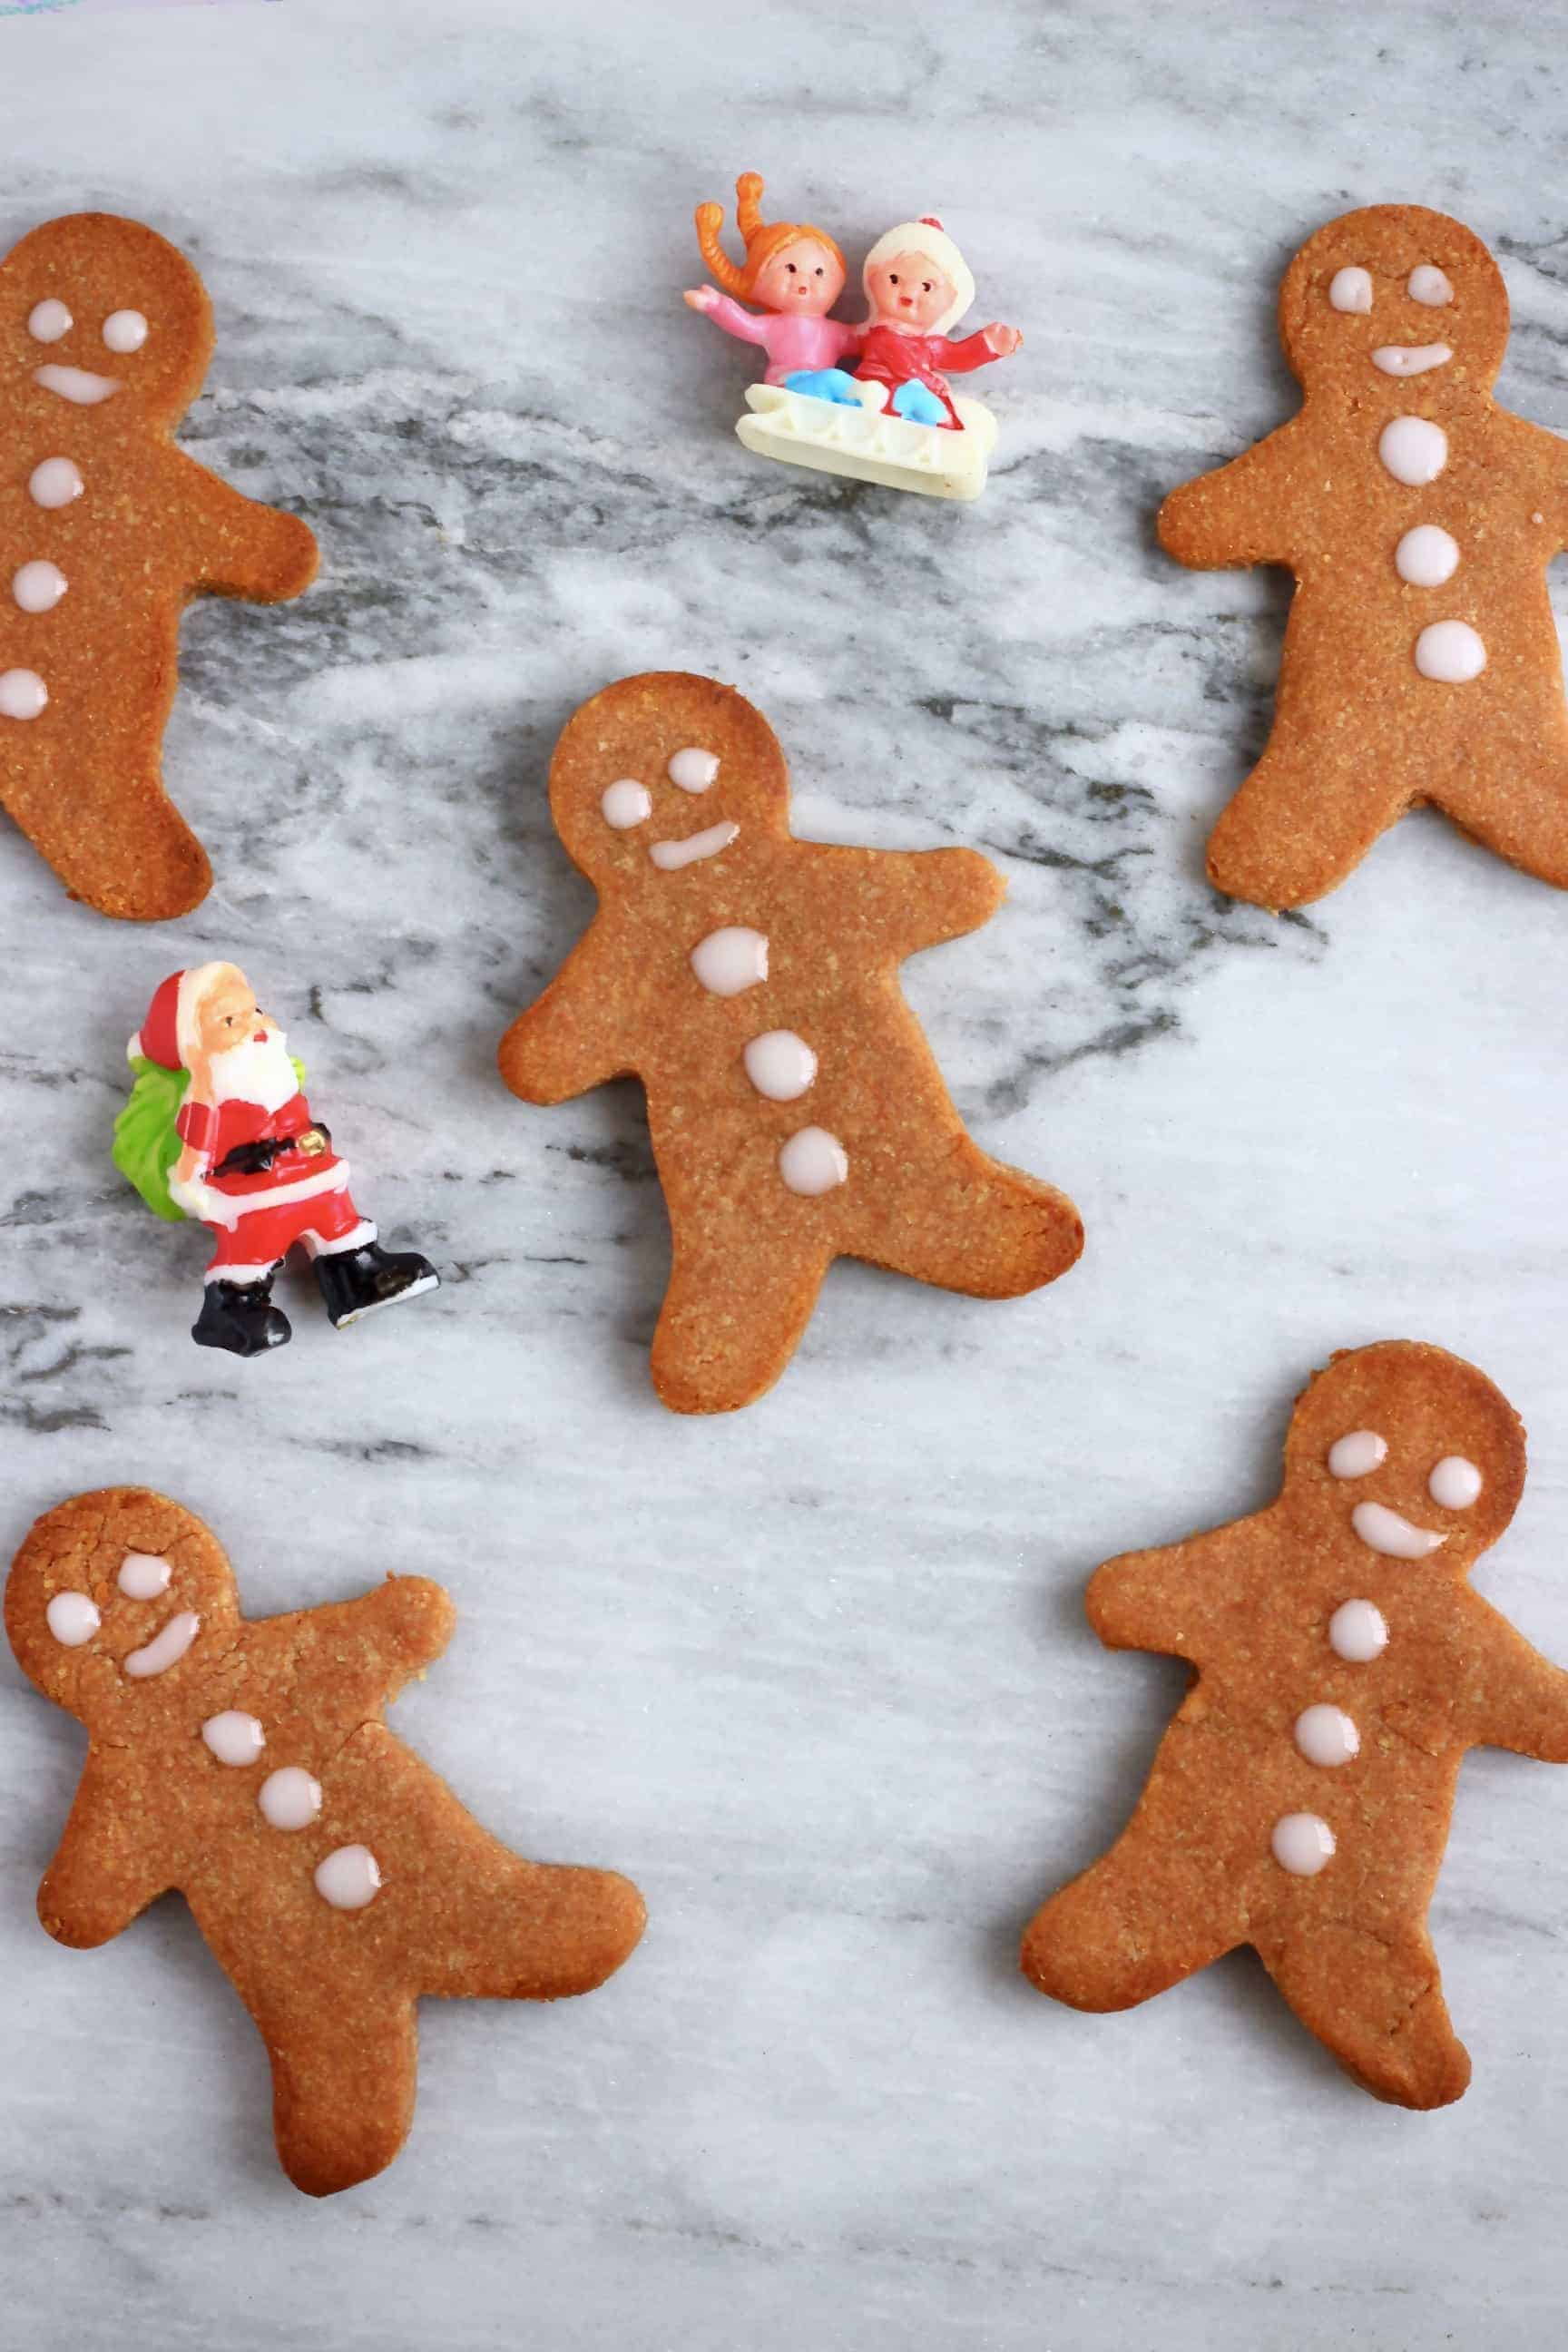 Five gluten-free vegan gingerbread cookies on a marble background